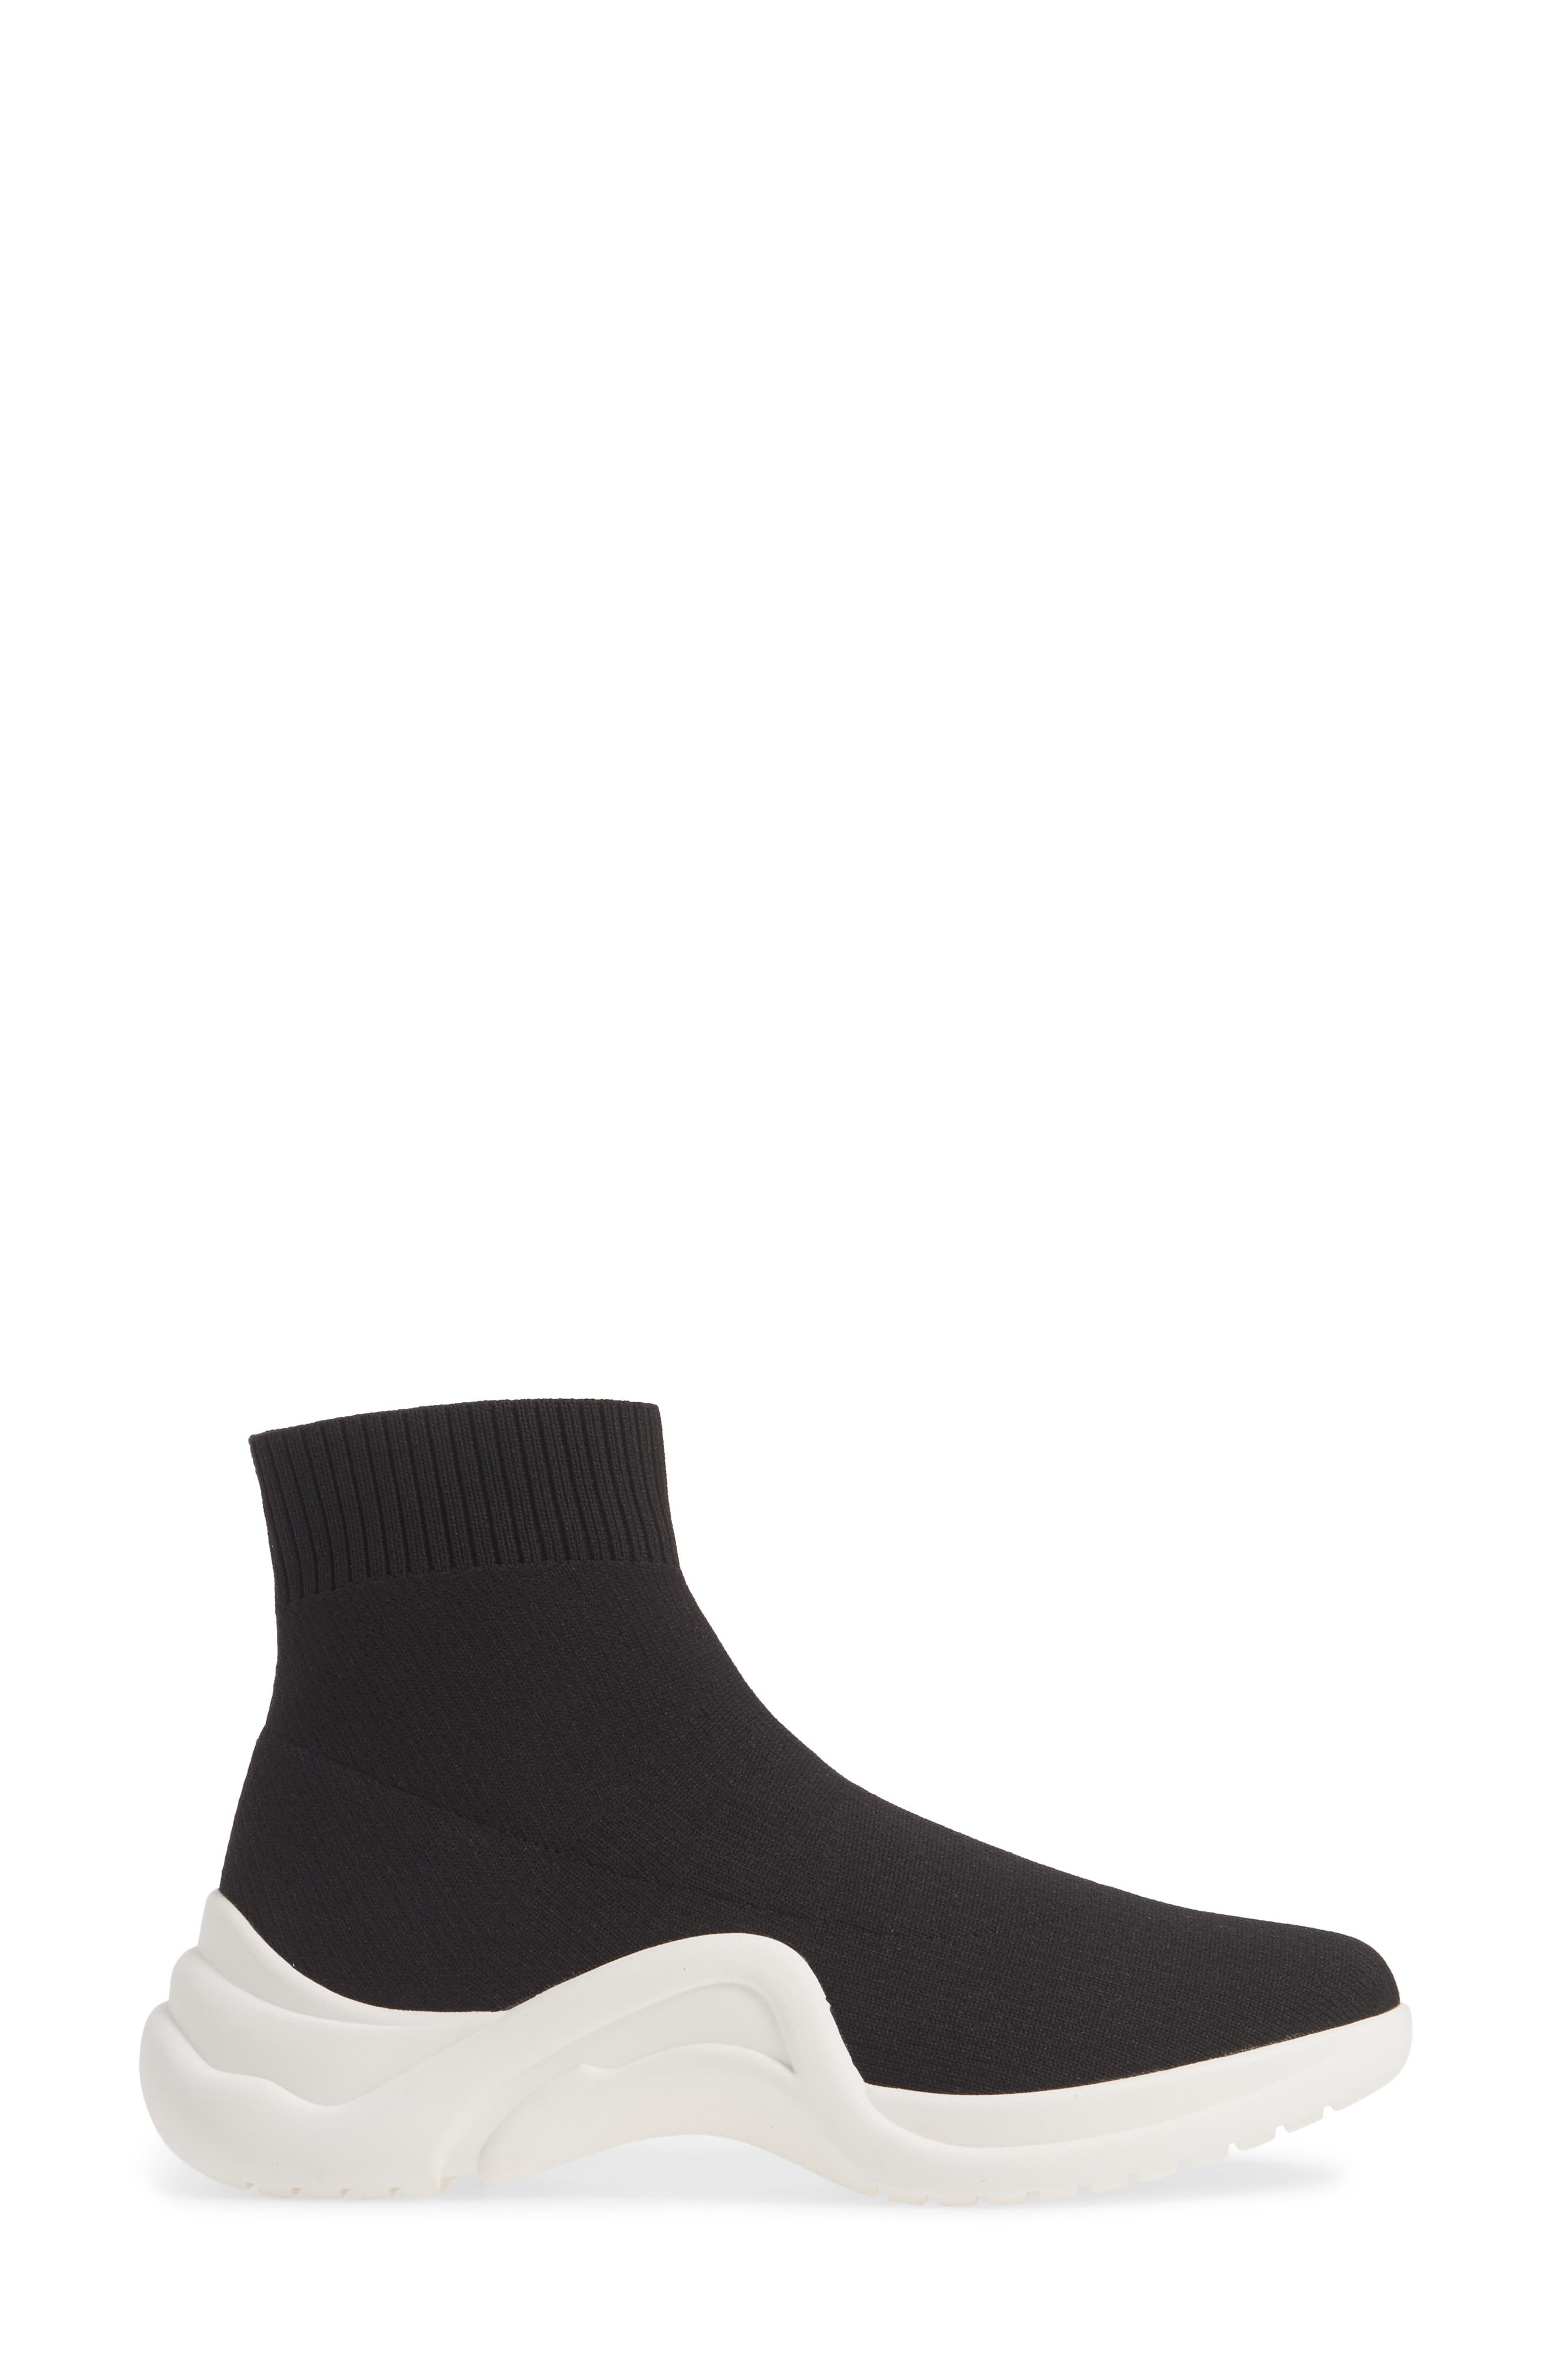 LINEA PAOLO, Gale Sneaker, Alternate thumbnail 3, color, BLACK KNIT FABRIC